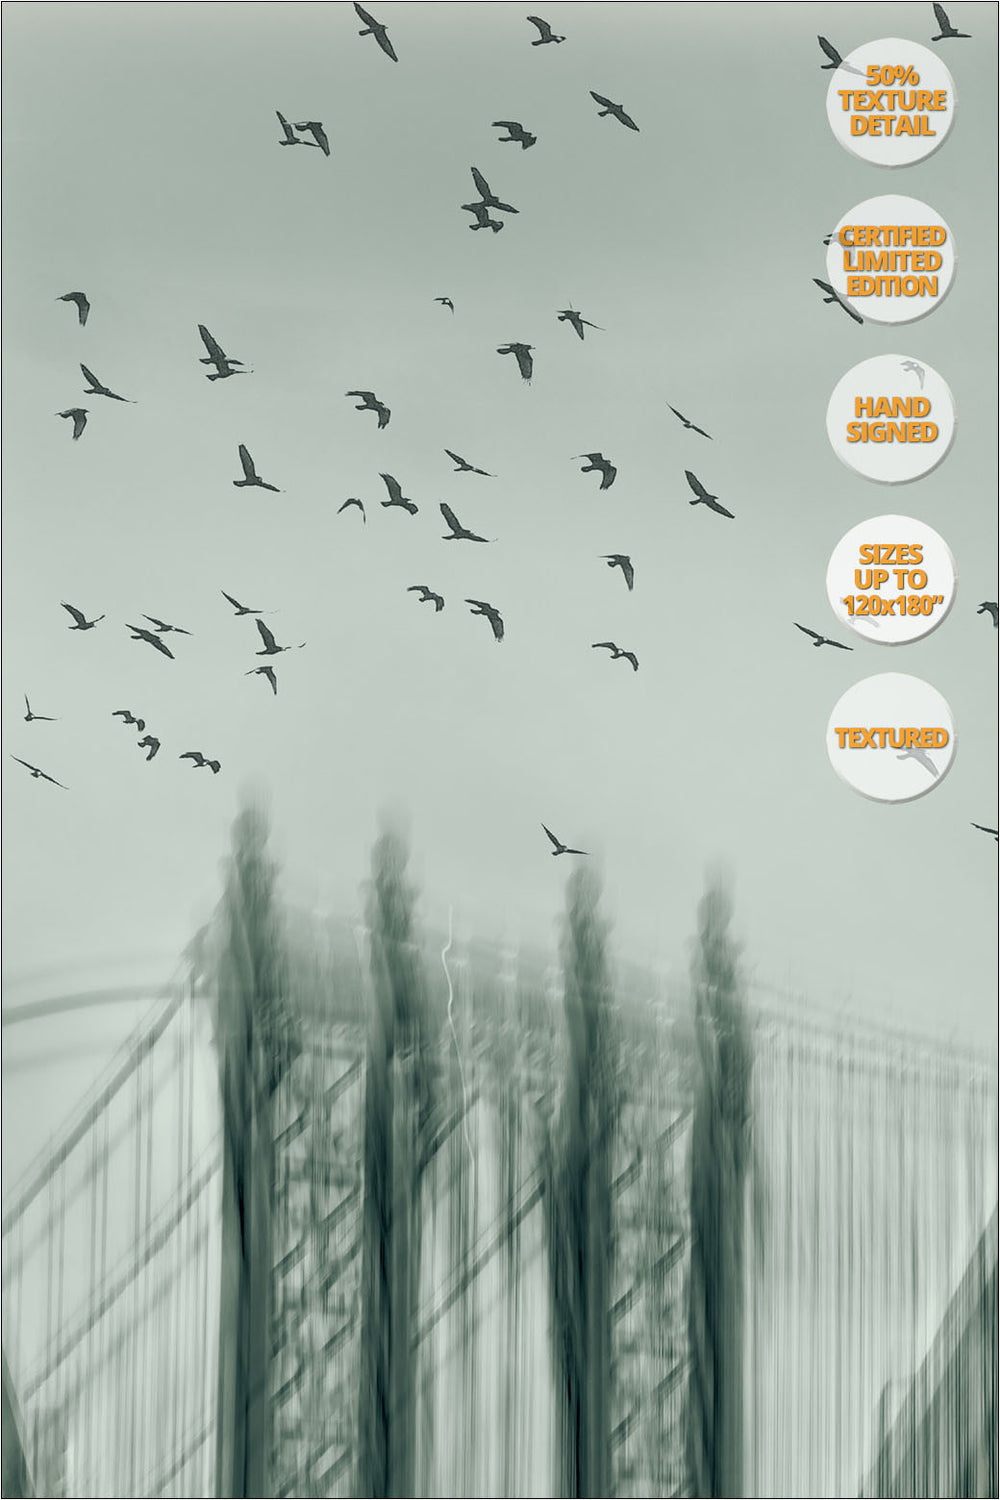 Manhattan Bridge, 'Way to Freedom' Series. | 50% Magnification Detail.